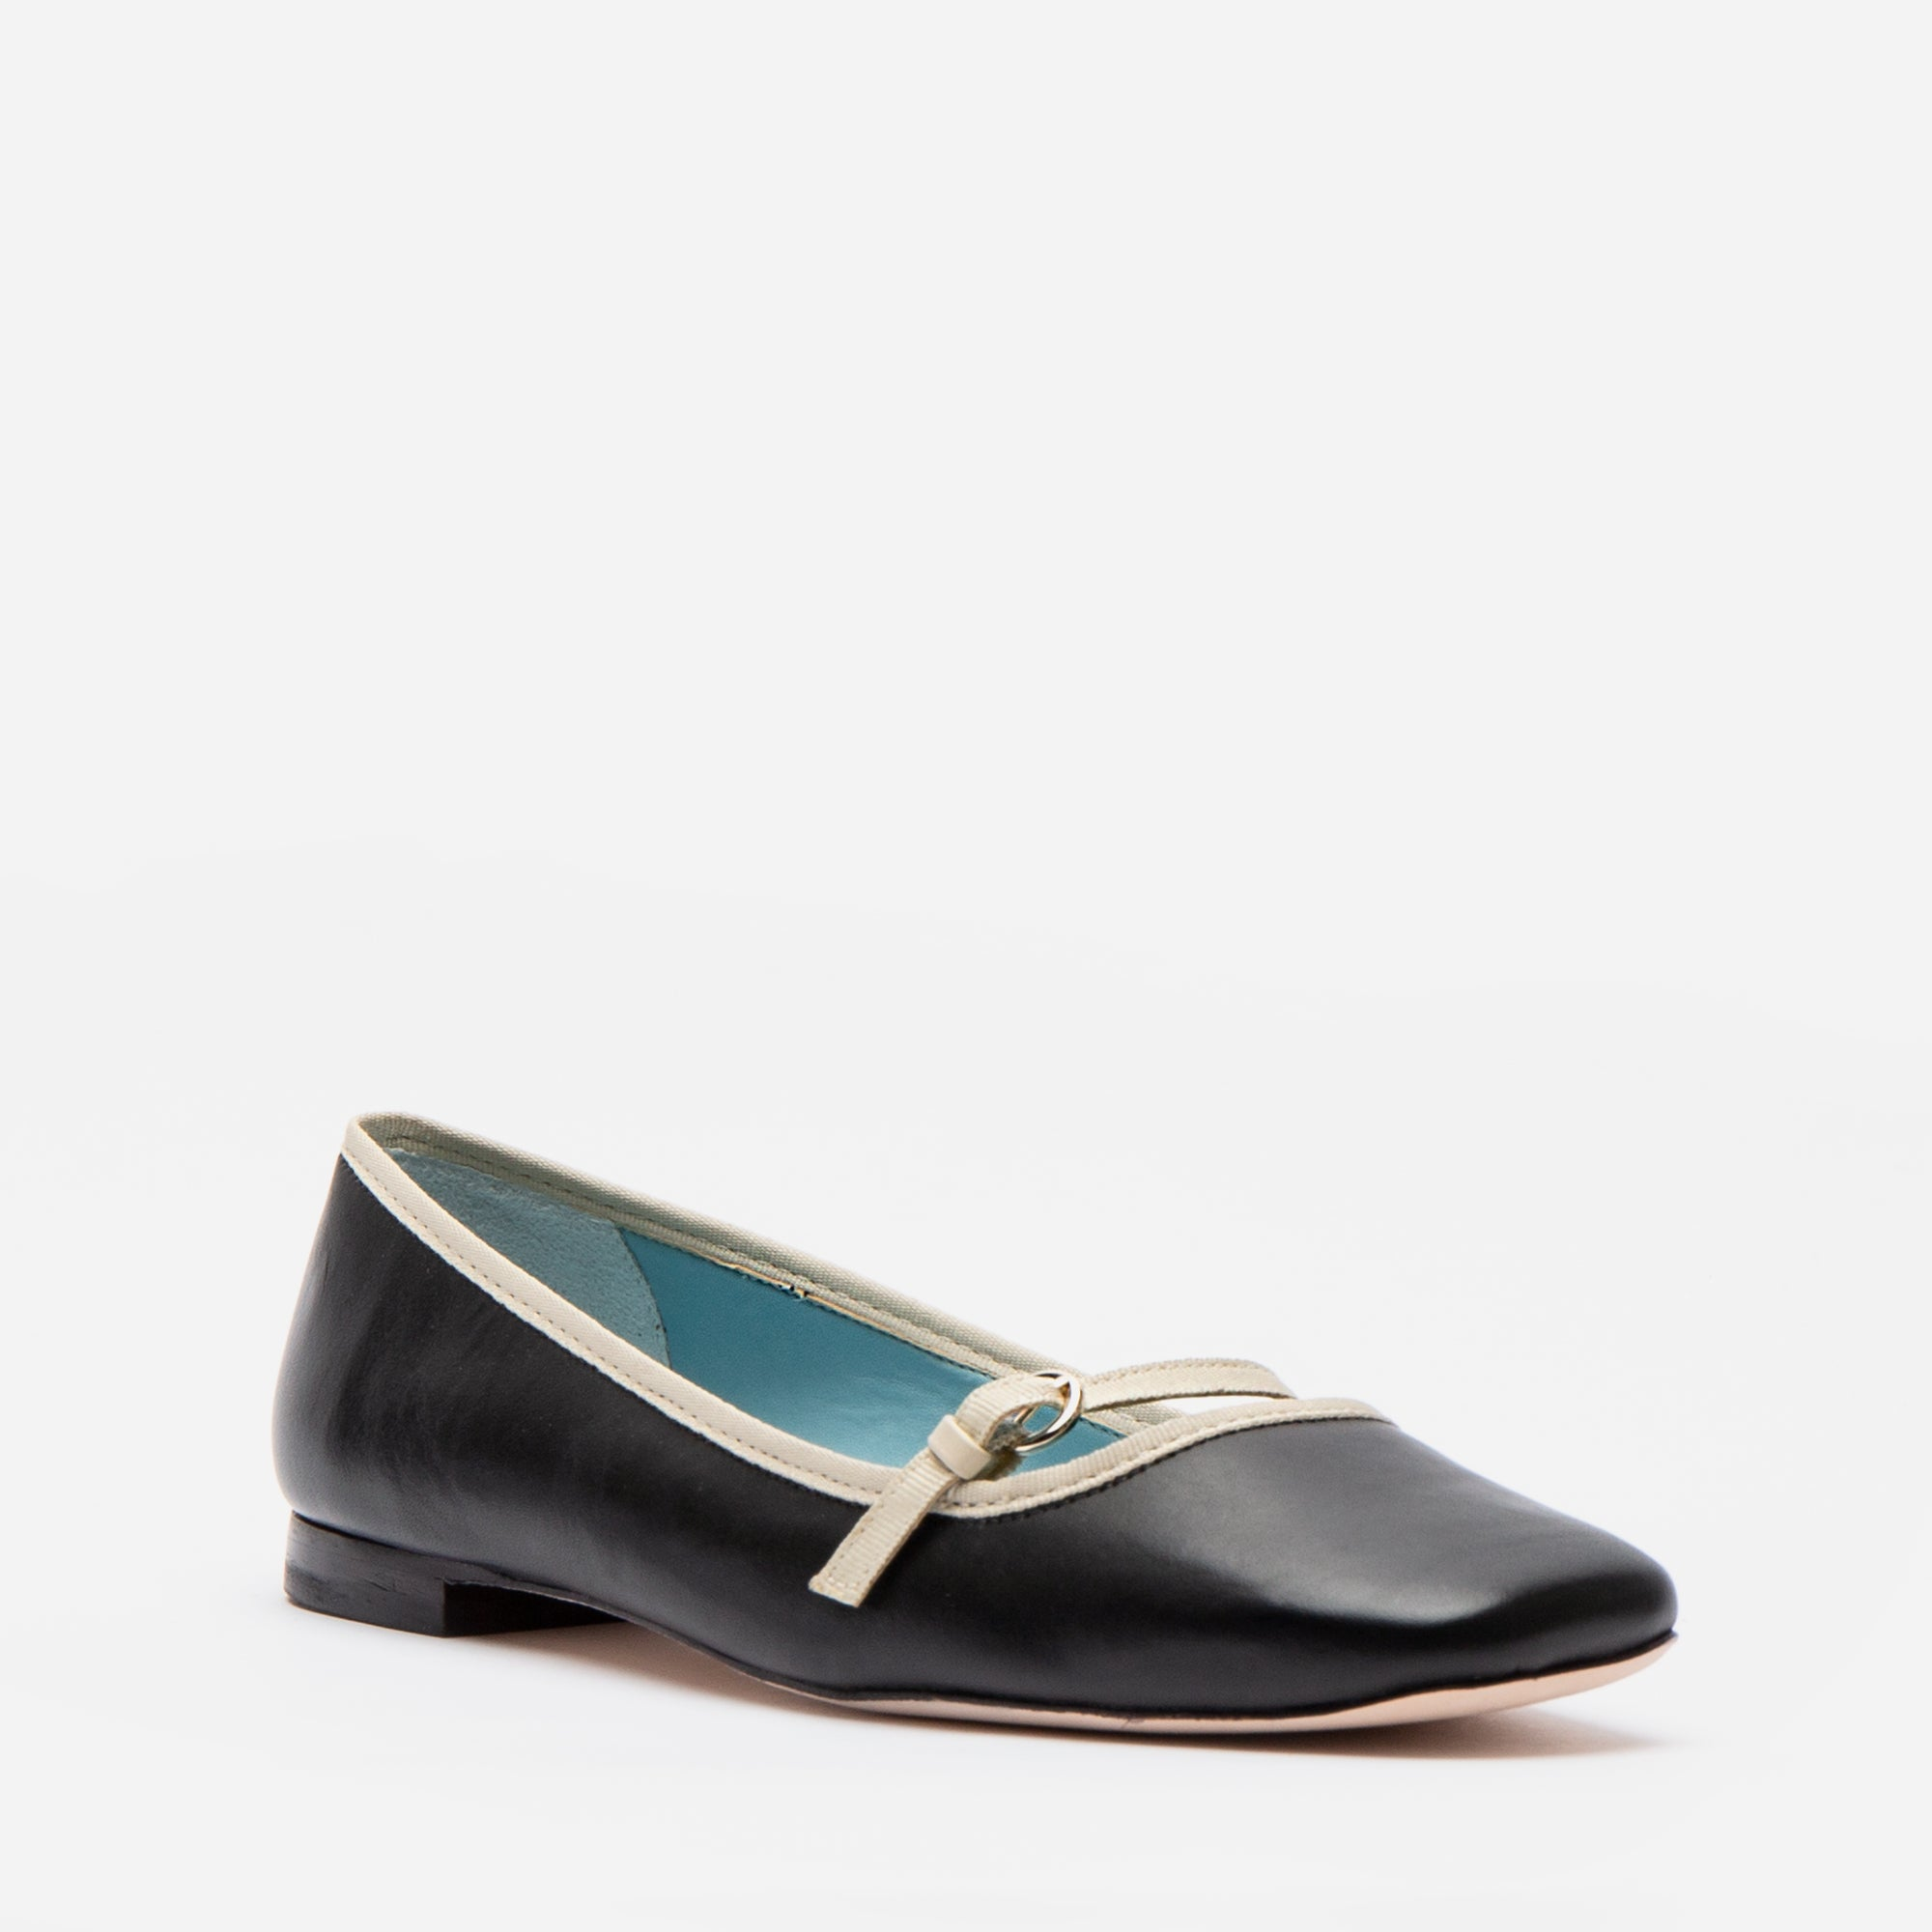 Josie Leather Flats Black Oyster